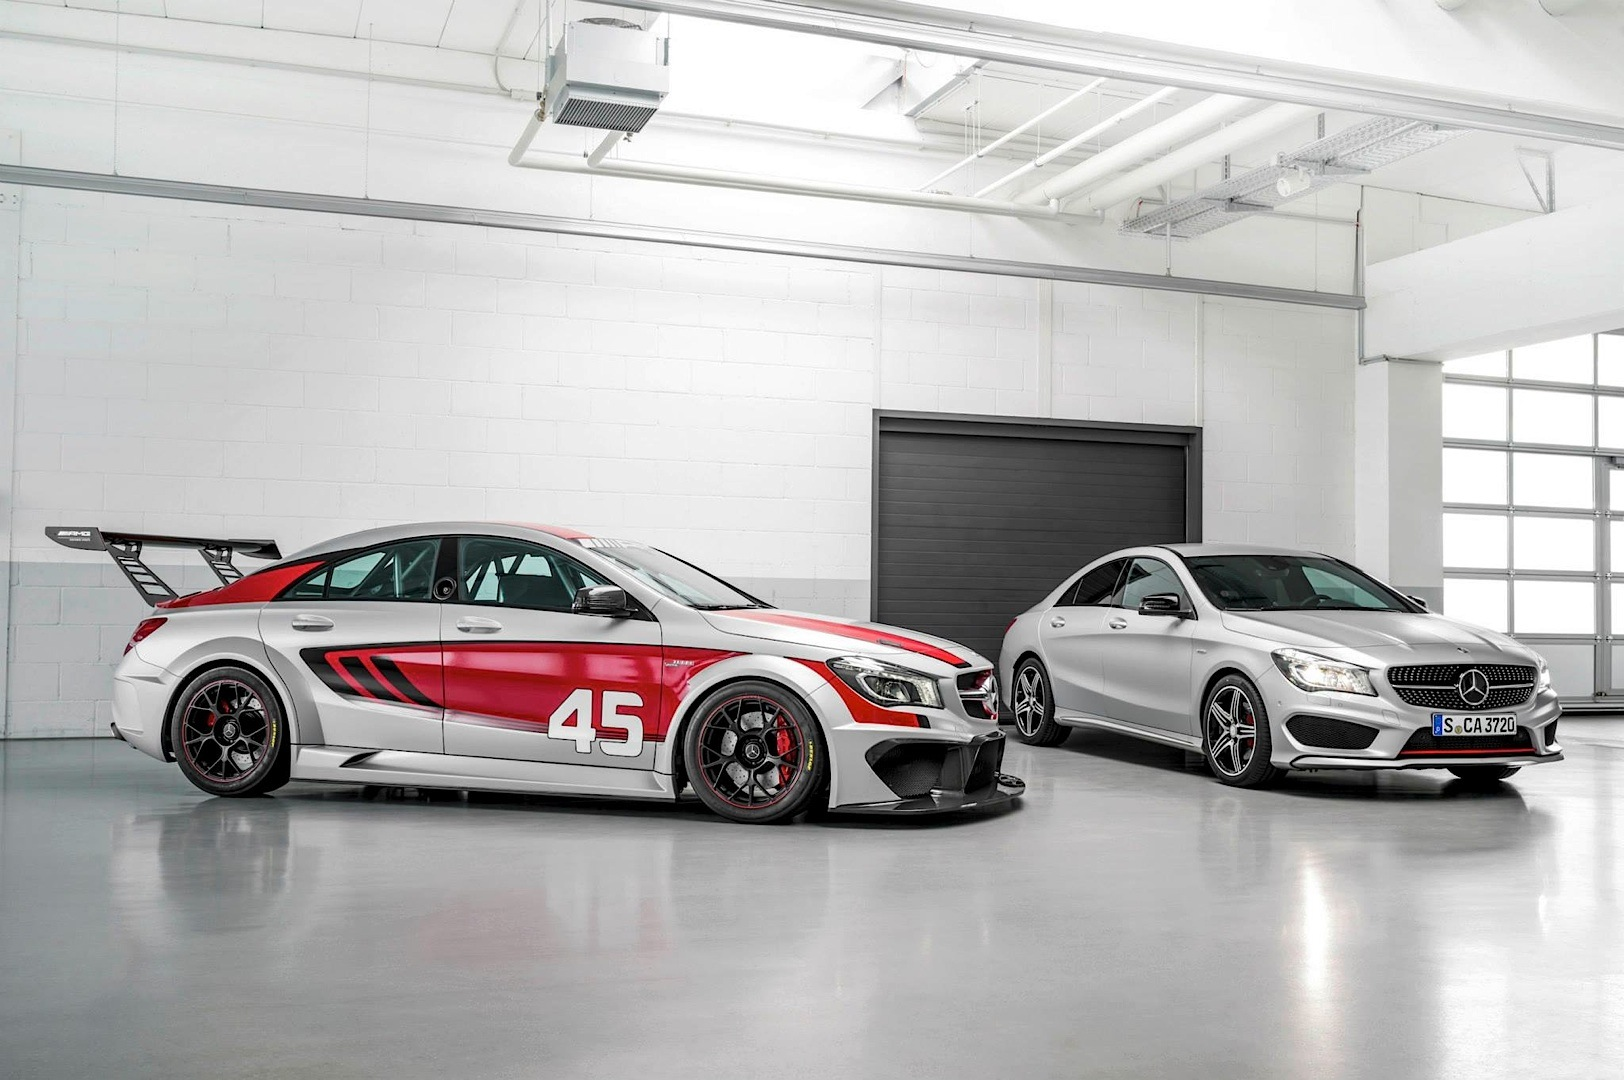 Mercedes Cla 45 Amg Racing Series Concept Coming To